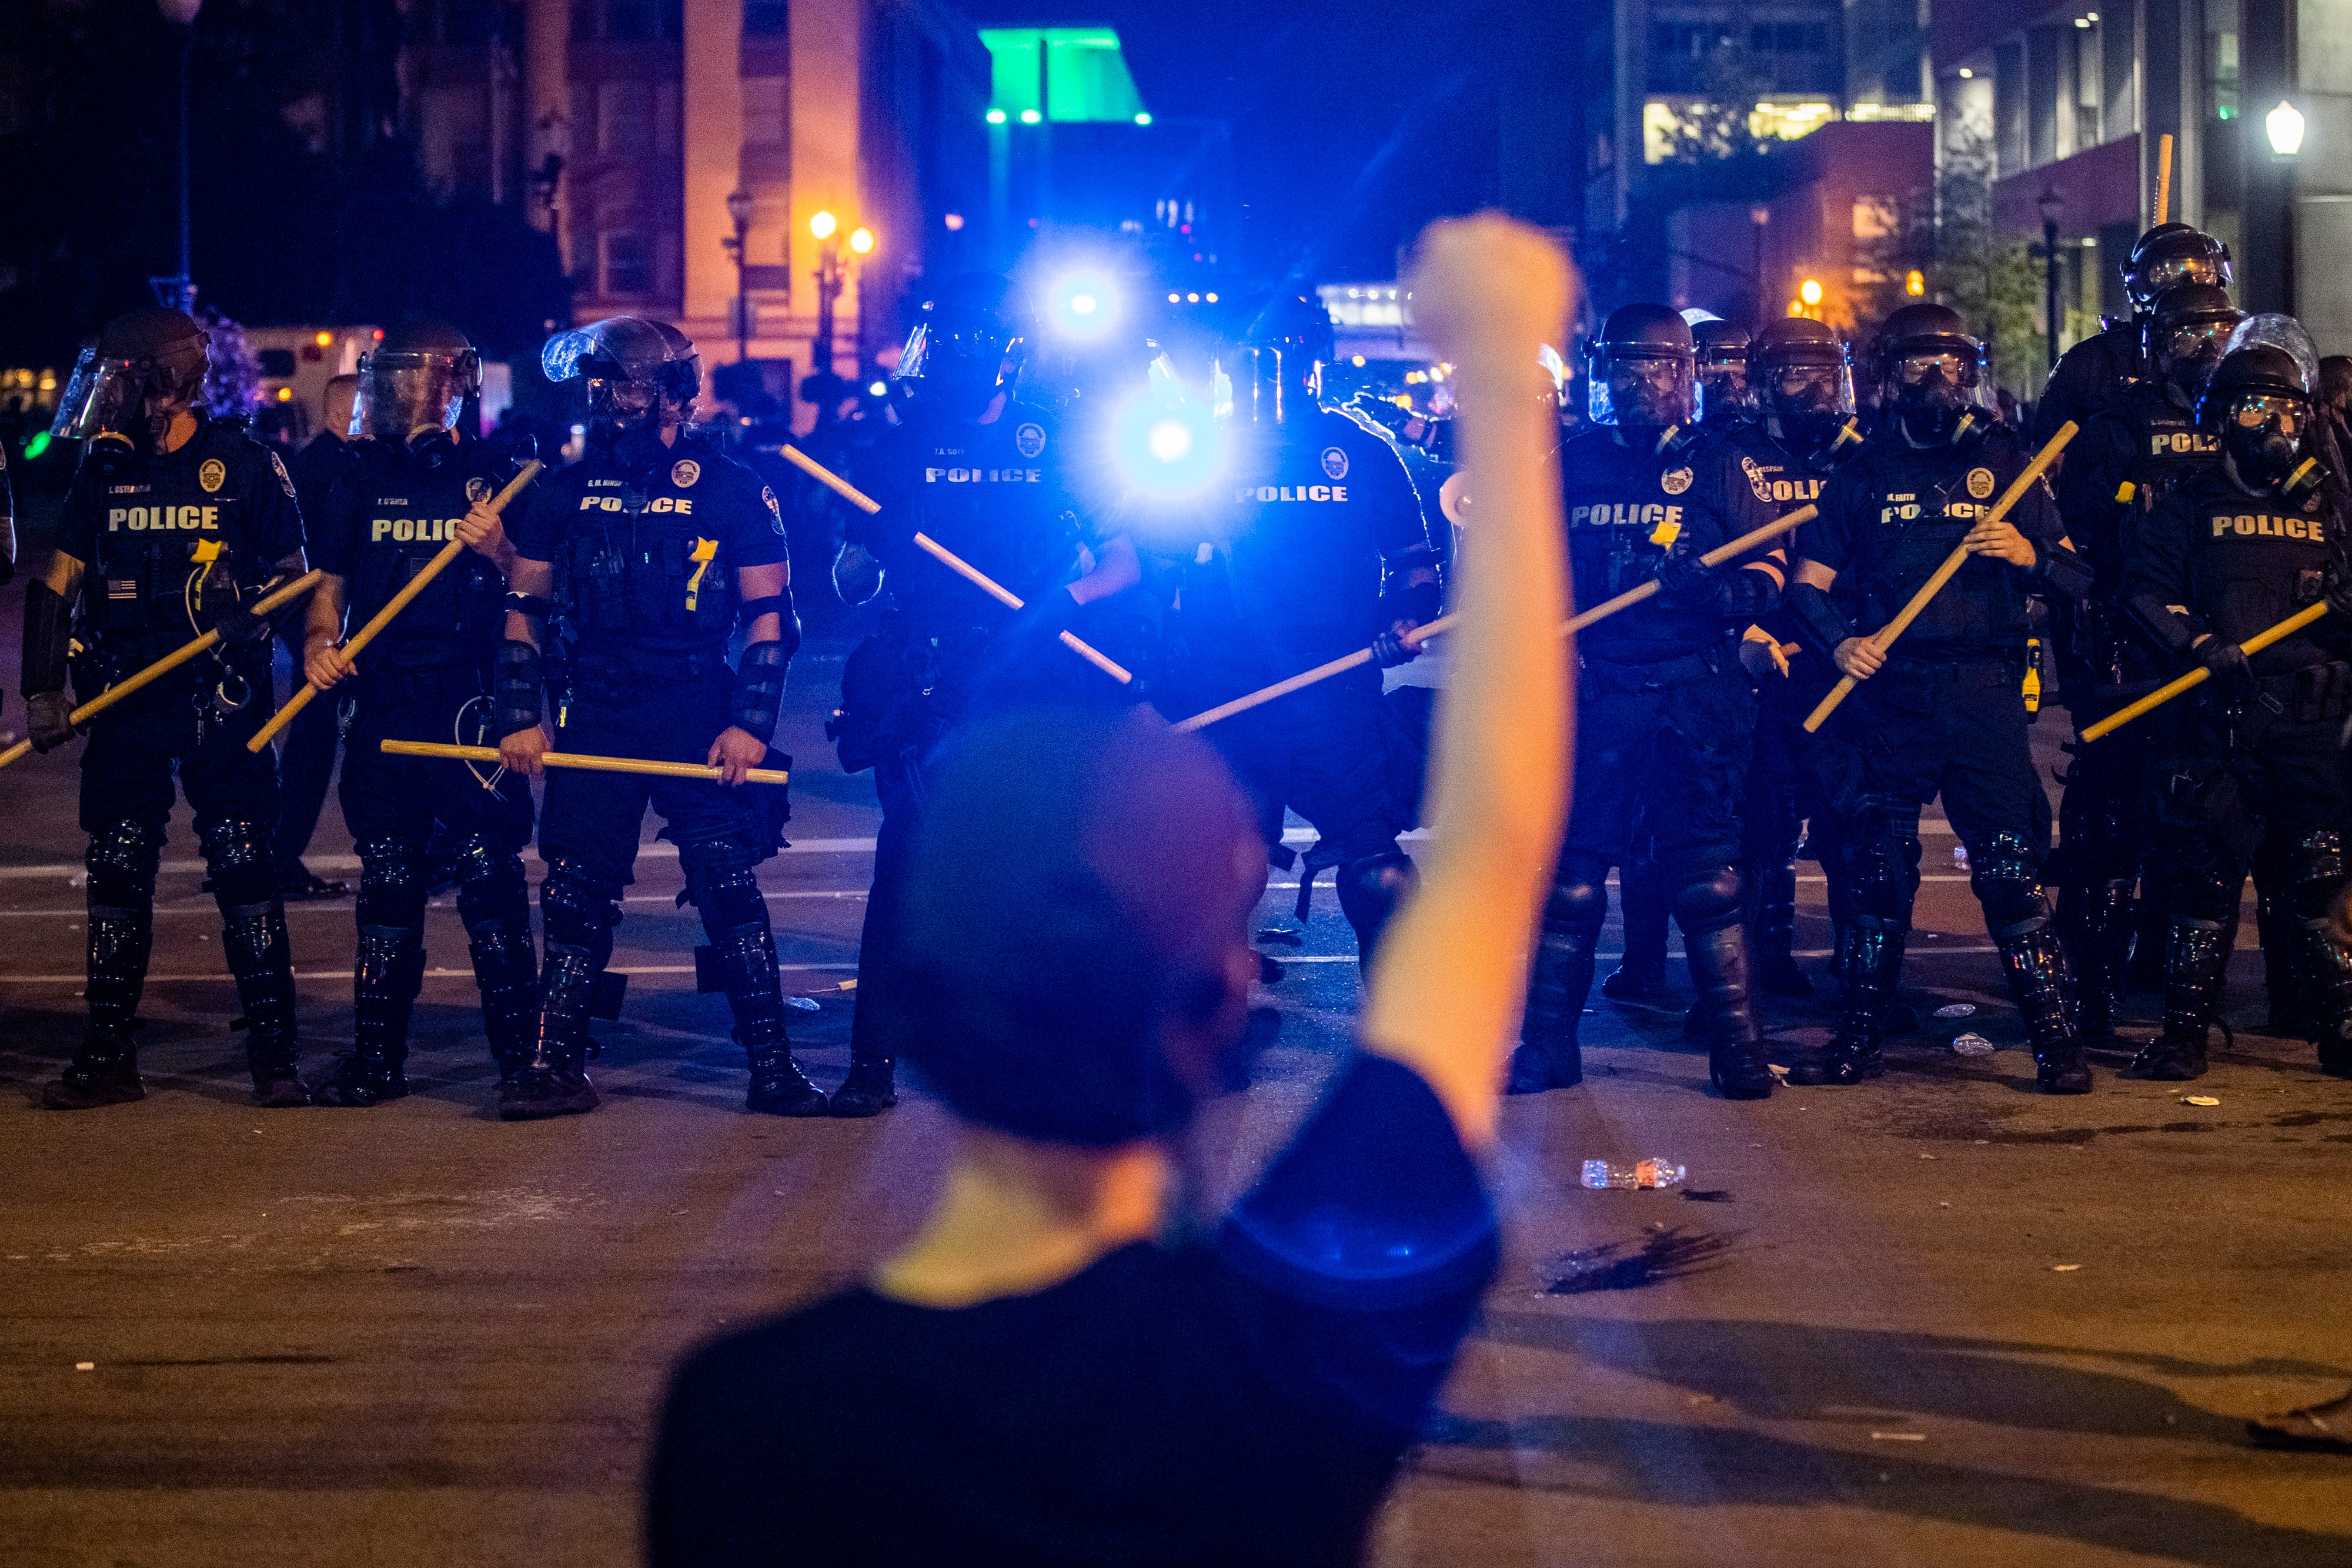 A protester raises a fist into the air early Friday morning as the deaths of Louisville's Breonna Taylor and Minneapolis' George Floyd at the hands of police spurred protests. May 29, 2020